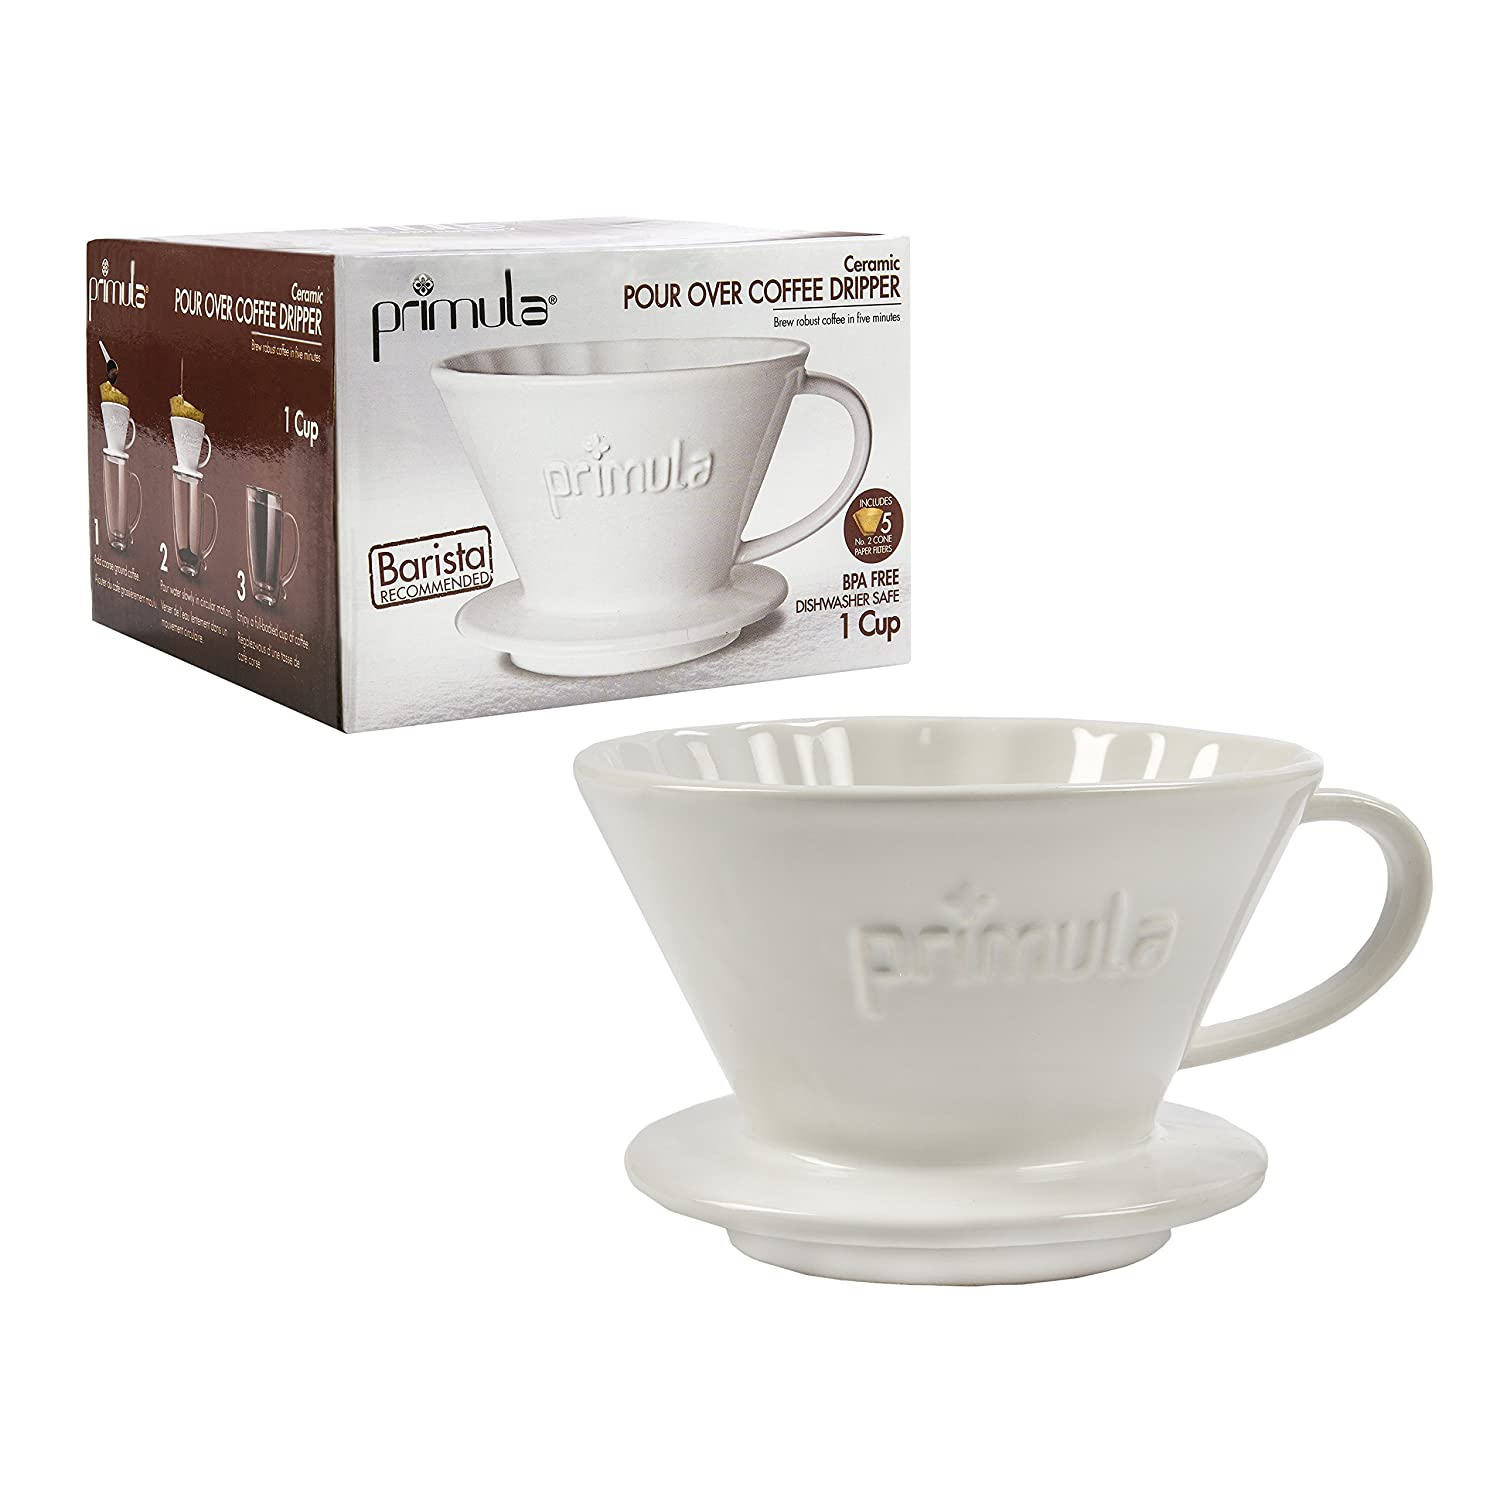 Primula Pour Over Coffee Maker For Light, Non Bitter Drip Brewed Fits Most... eBay